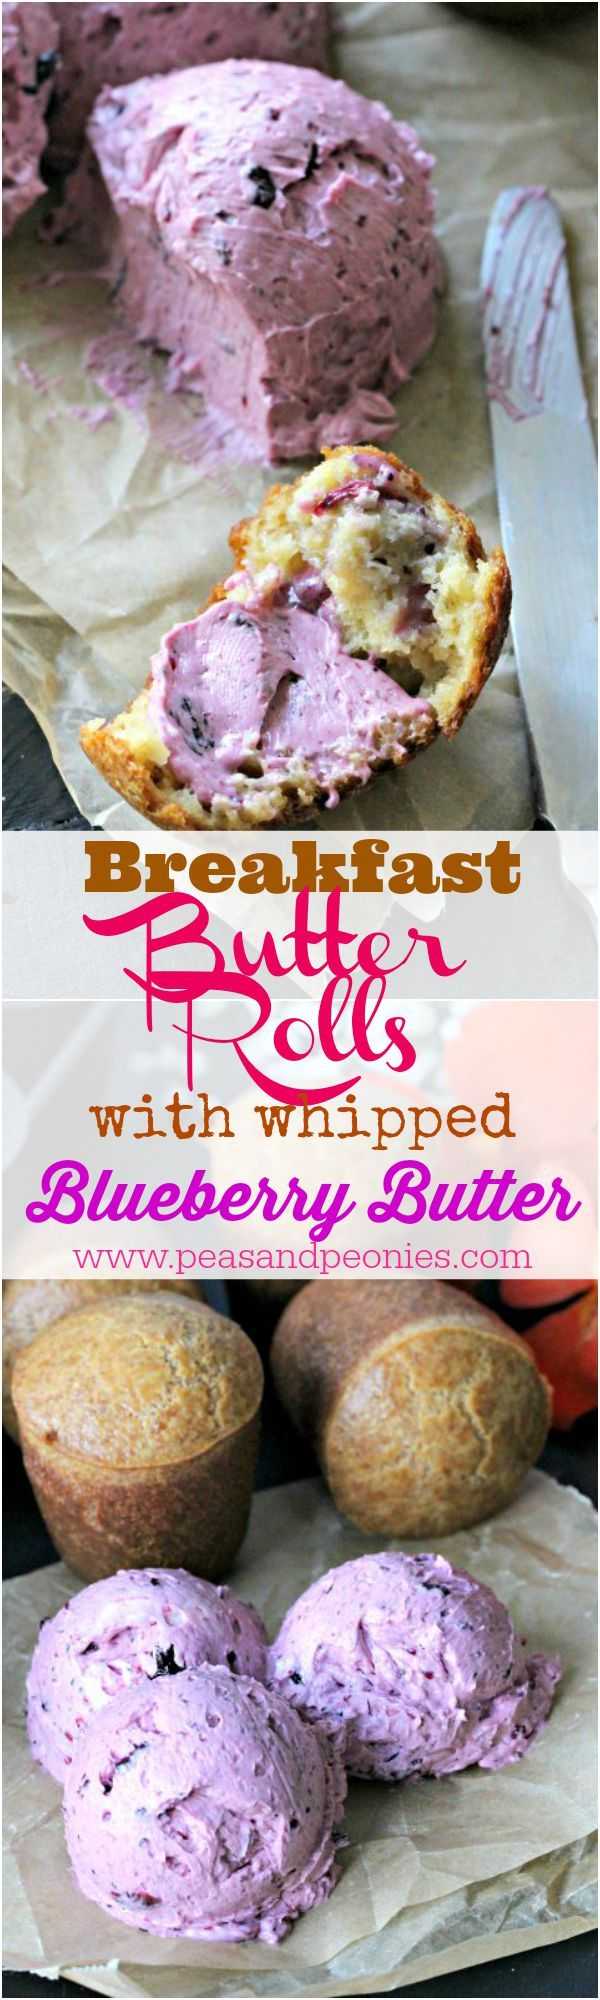 Breakfast Butter Rolls with homemade Whipped Blueberry Butter